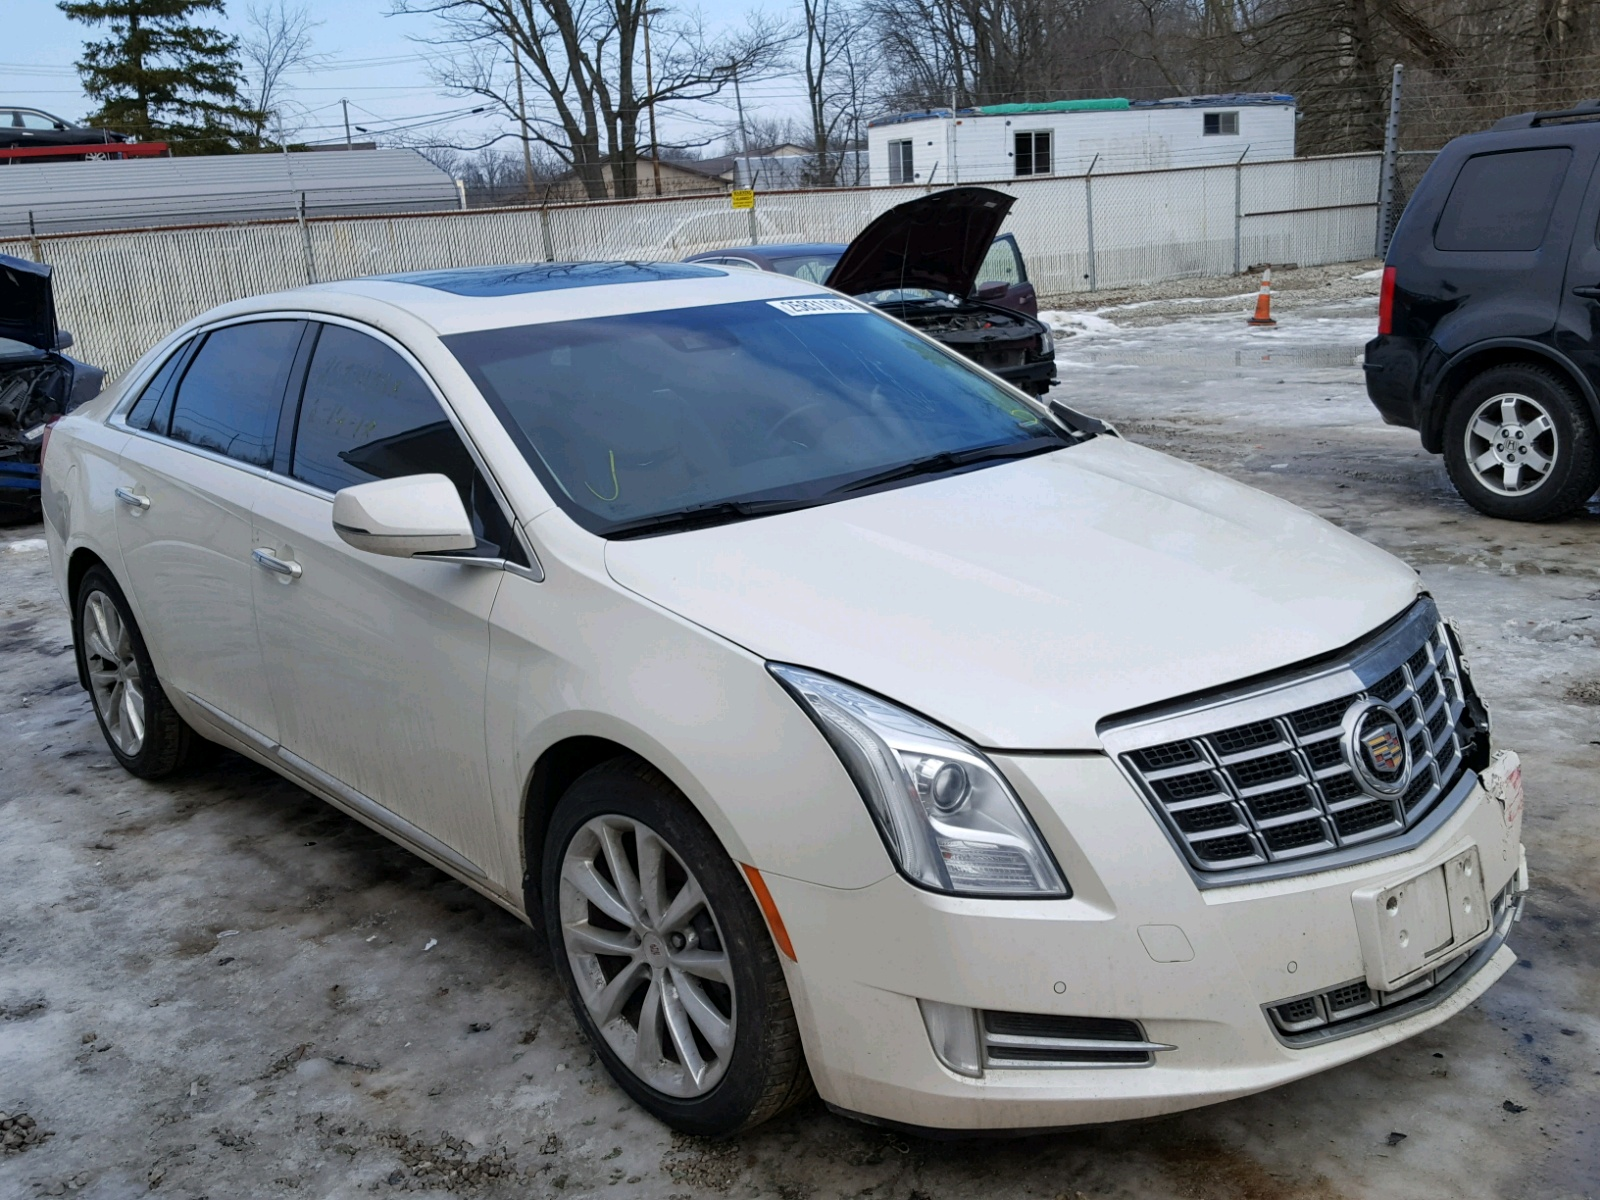 sale news for cadillac hot xts youtube cars automotive watch